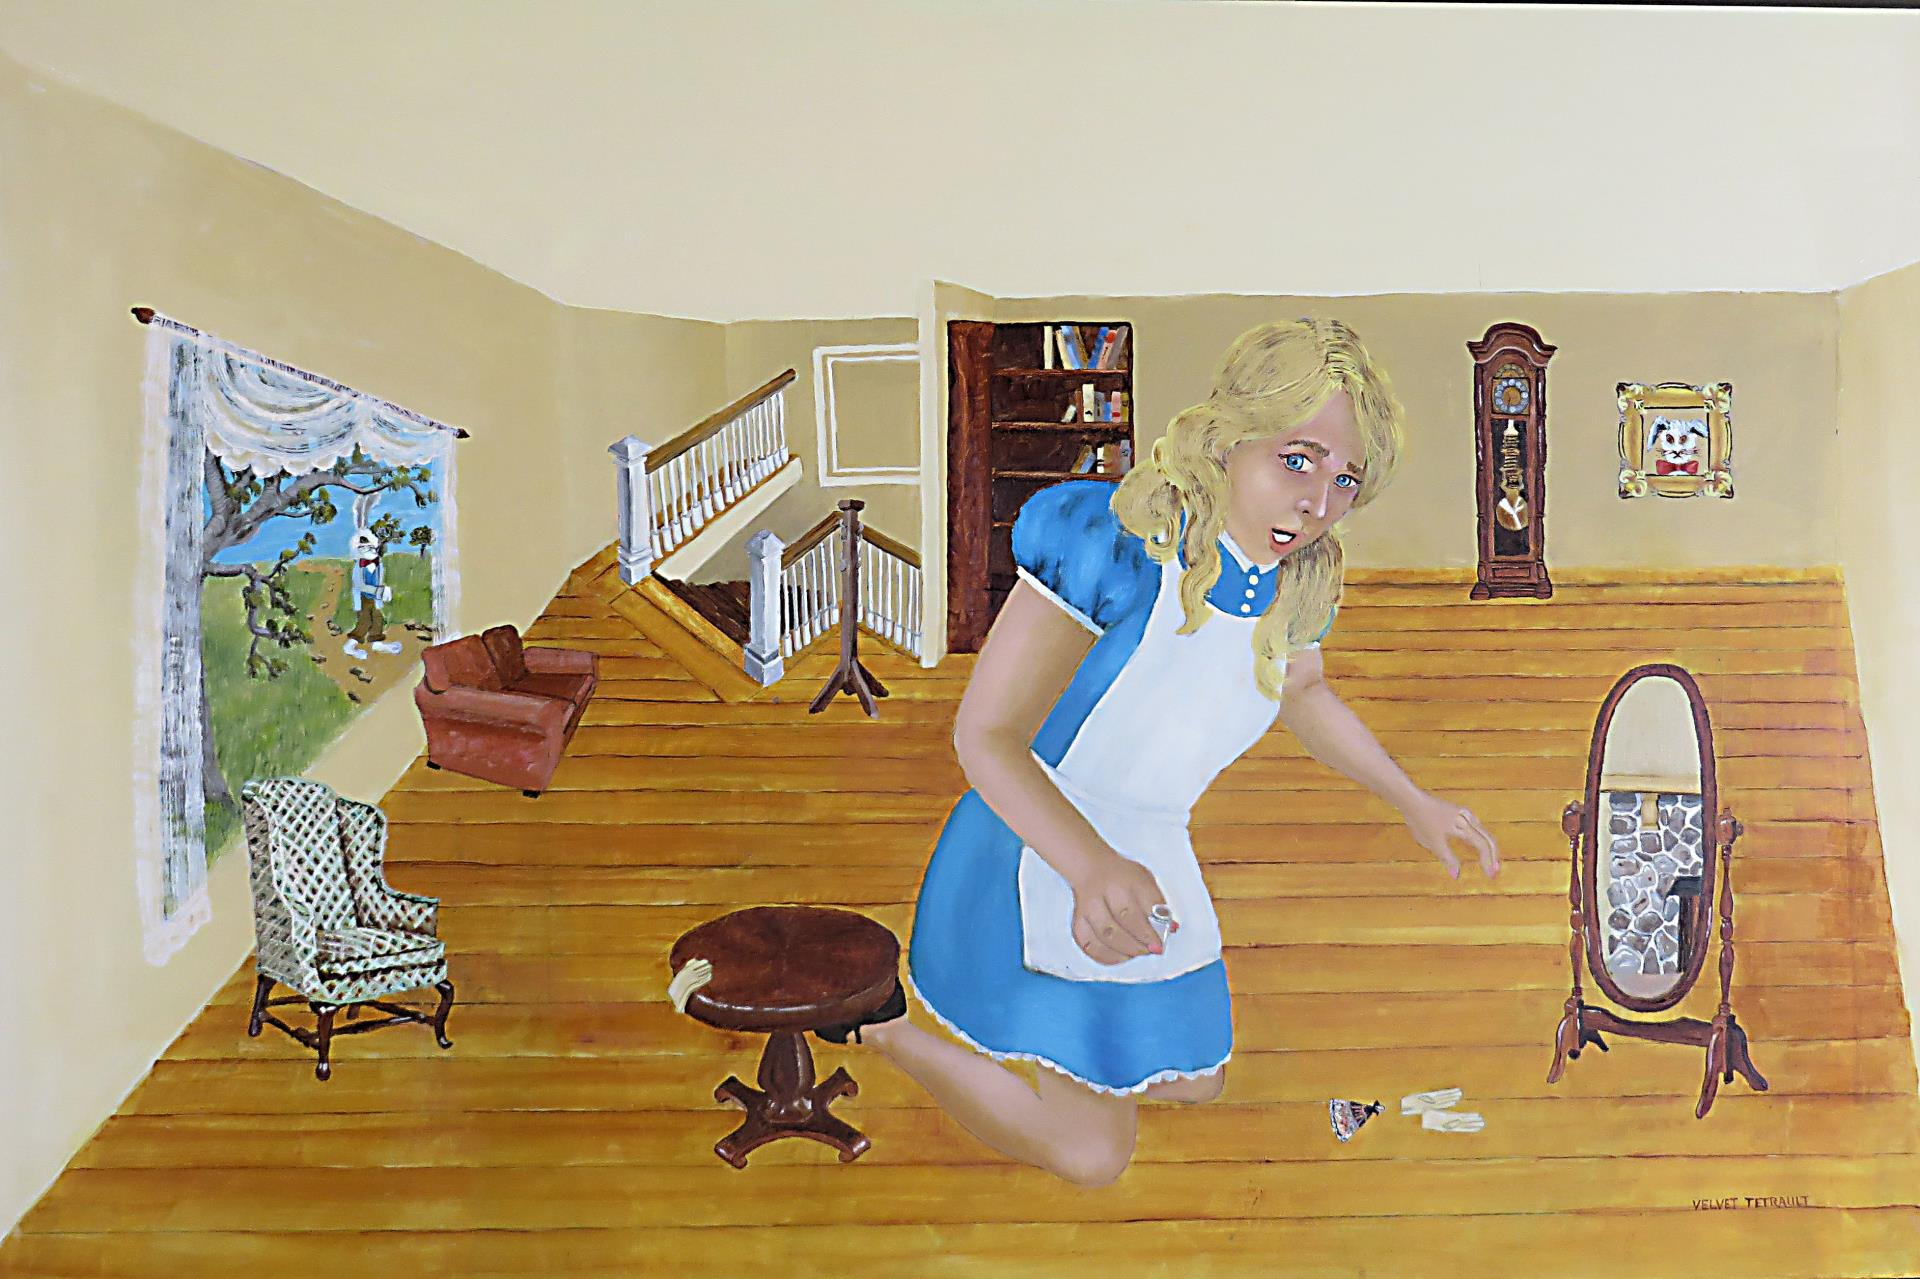 28c Velvet Tetrault - Alice Grows In White Rabbit House - oil